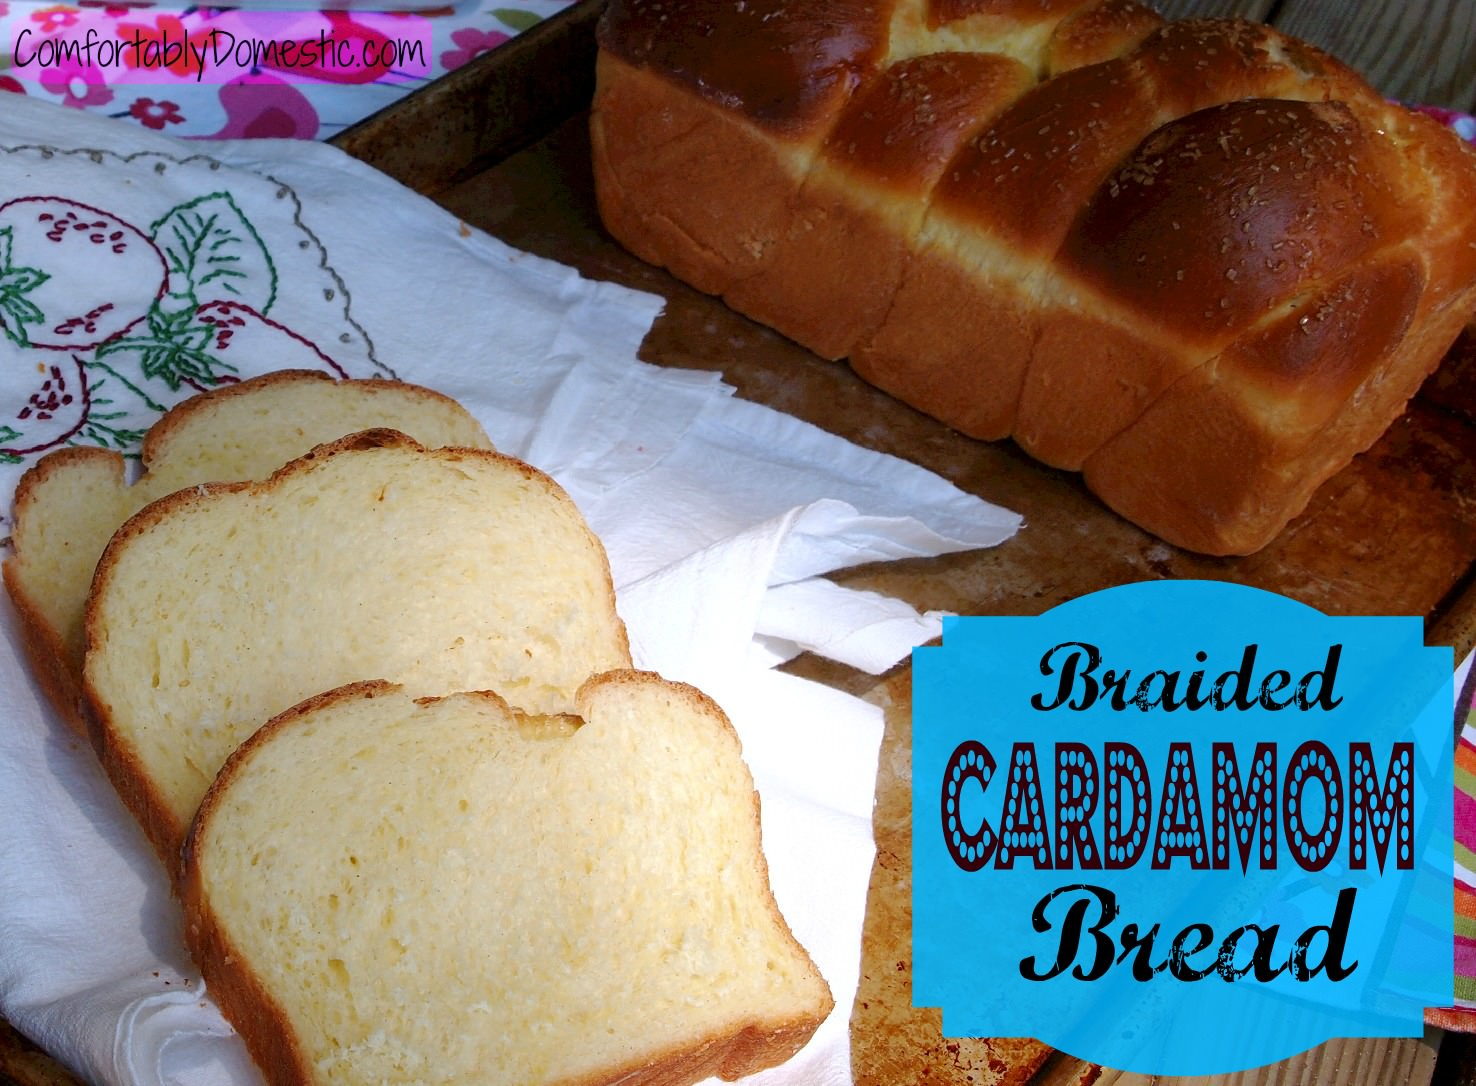 Braided Cardamom Bread | Comfortably Domestic